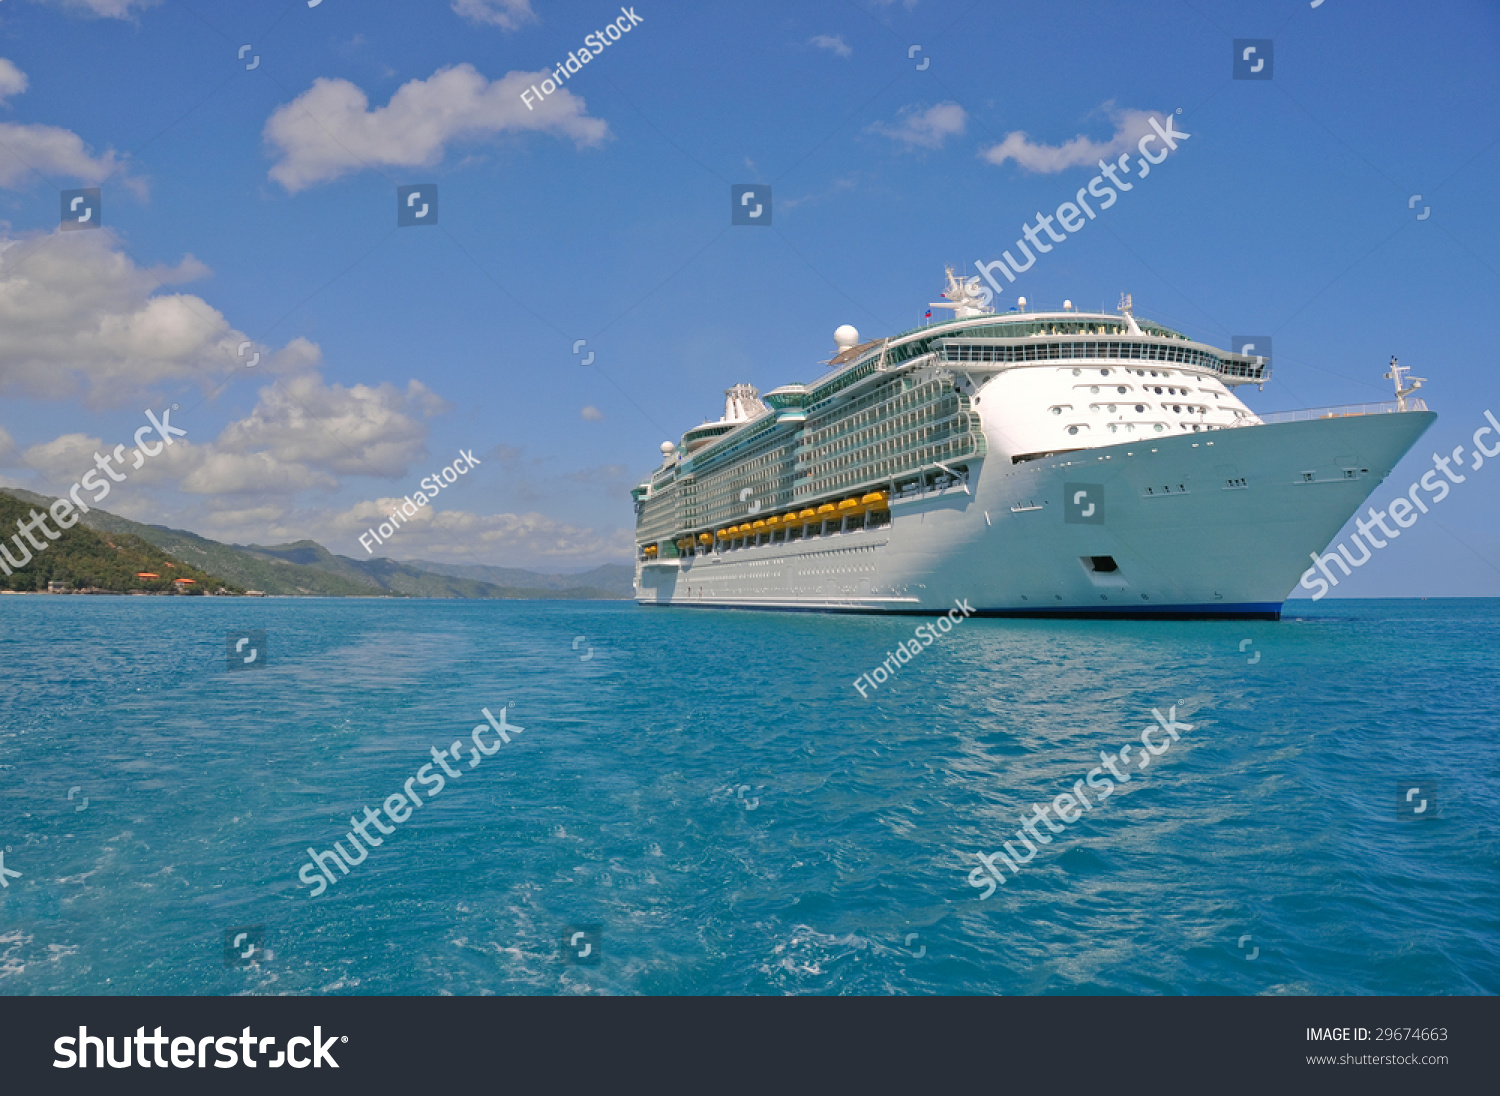 Huge Cruise Ship Caribbean Port Stock Photo Shutterstock - Huge cruise ship